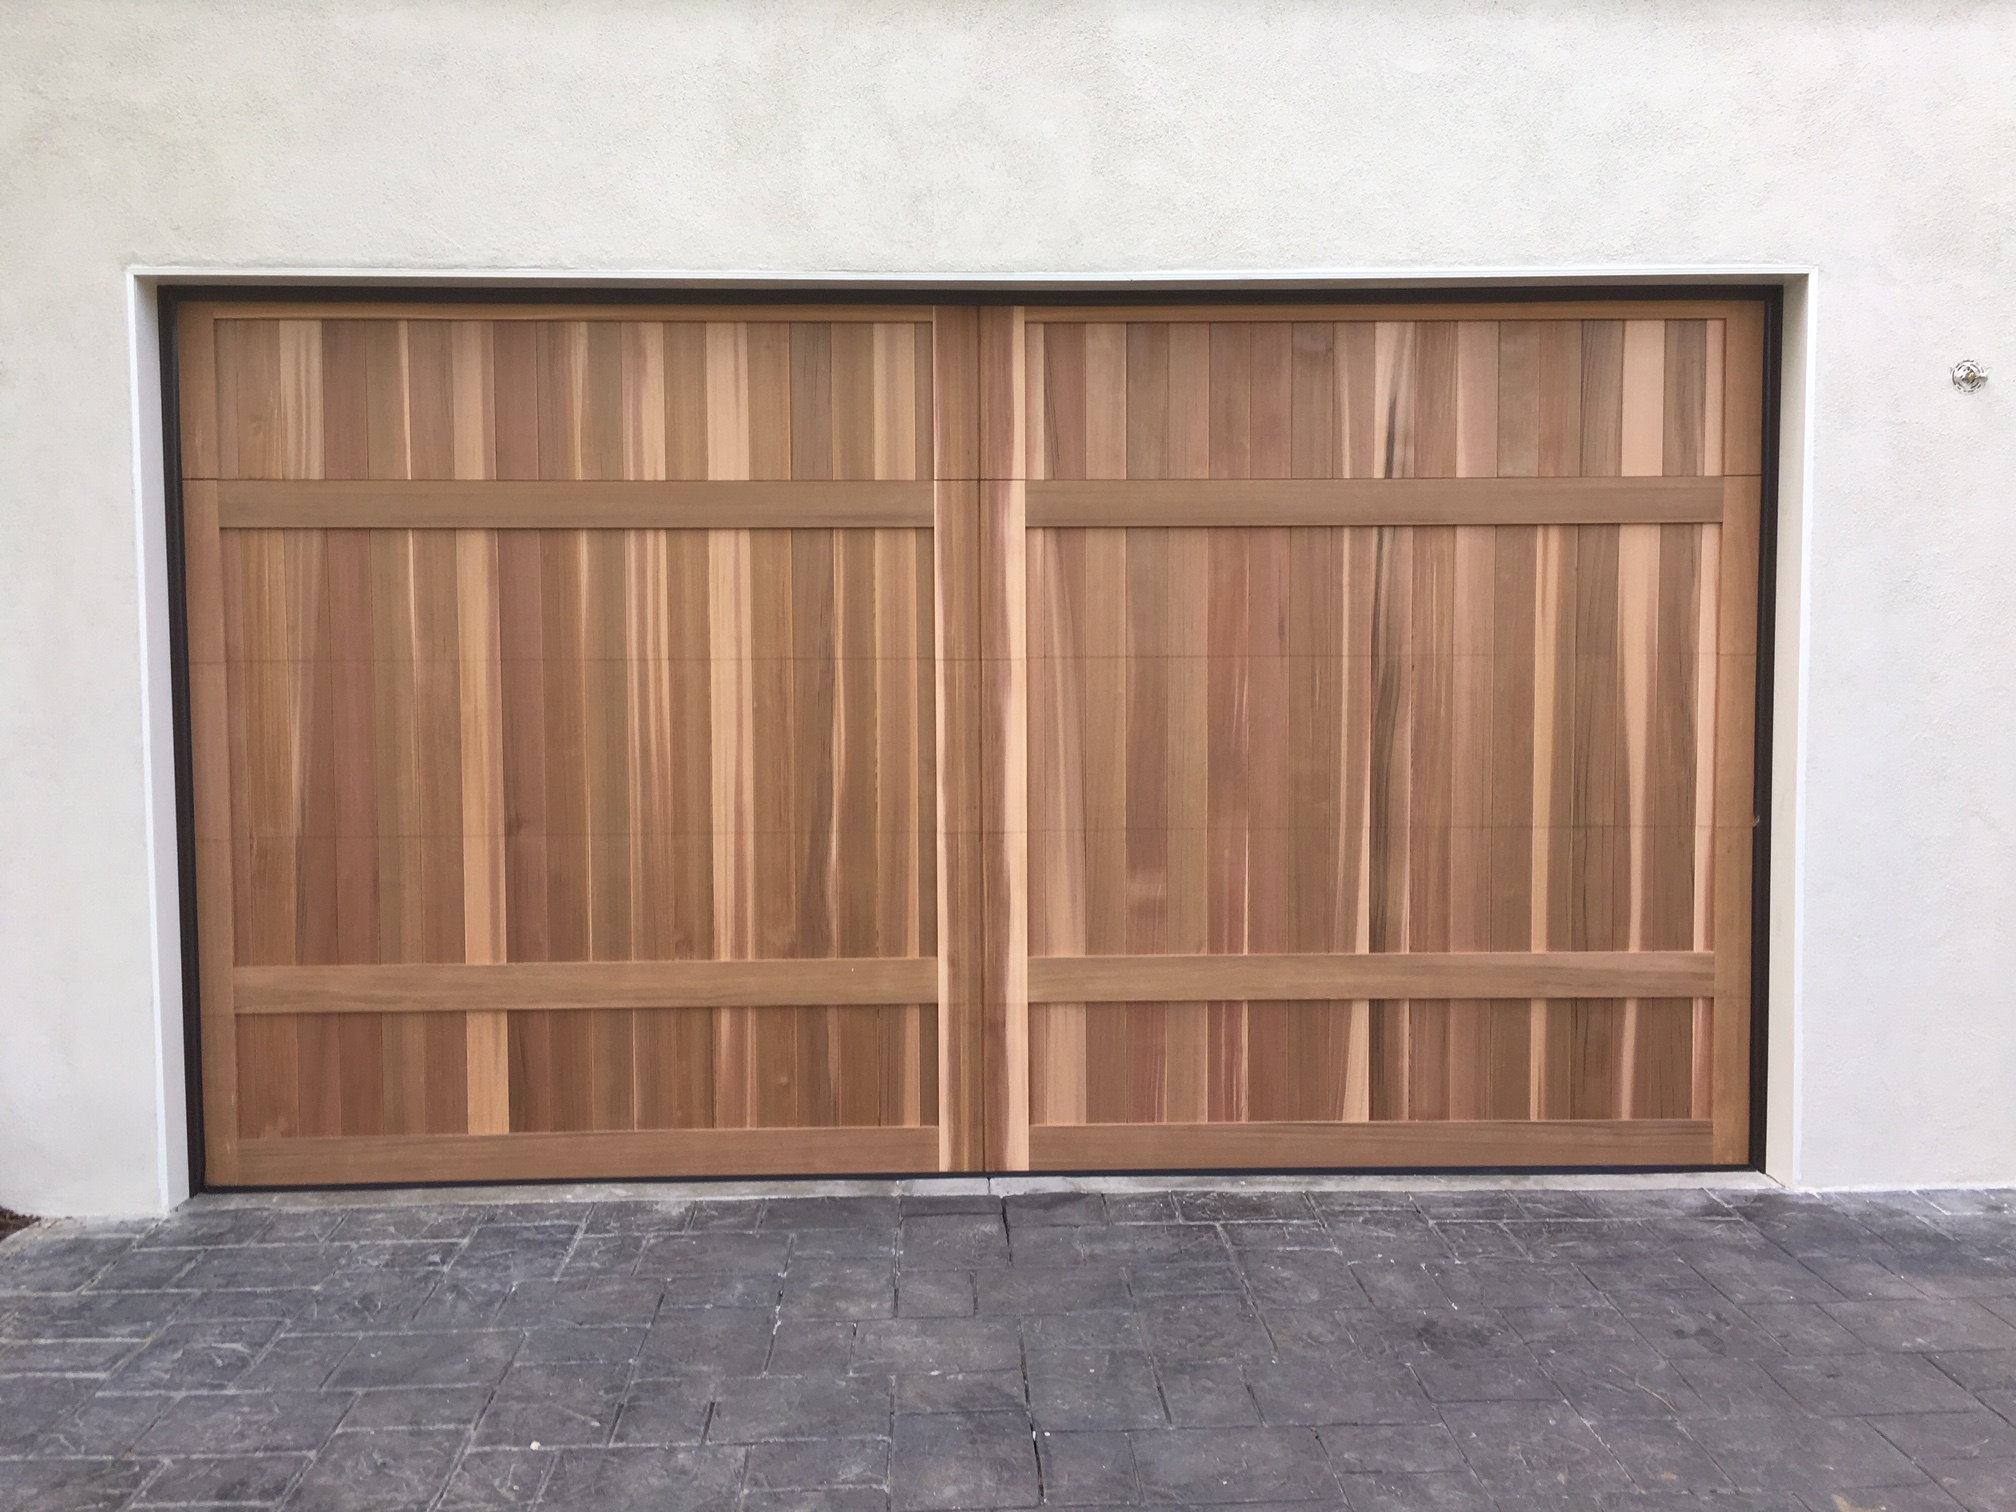 Craftsman Garage Door in Pasadena California